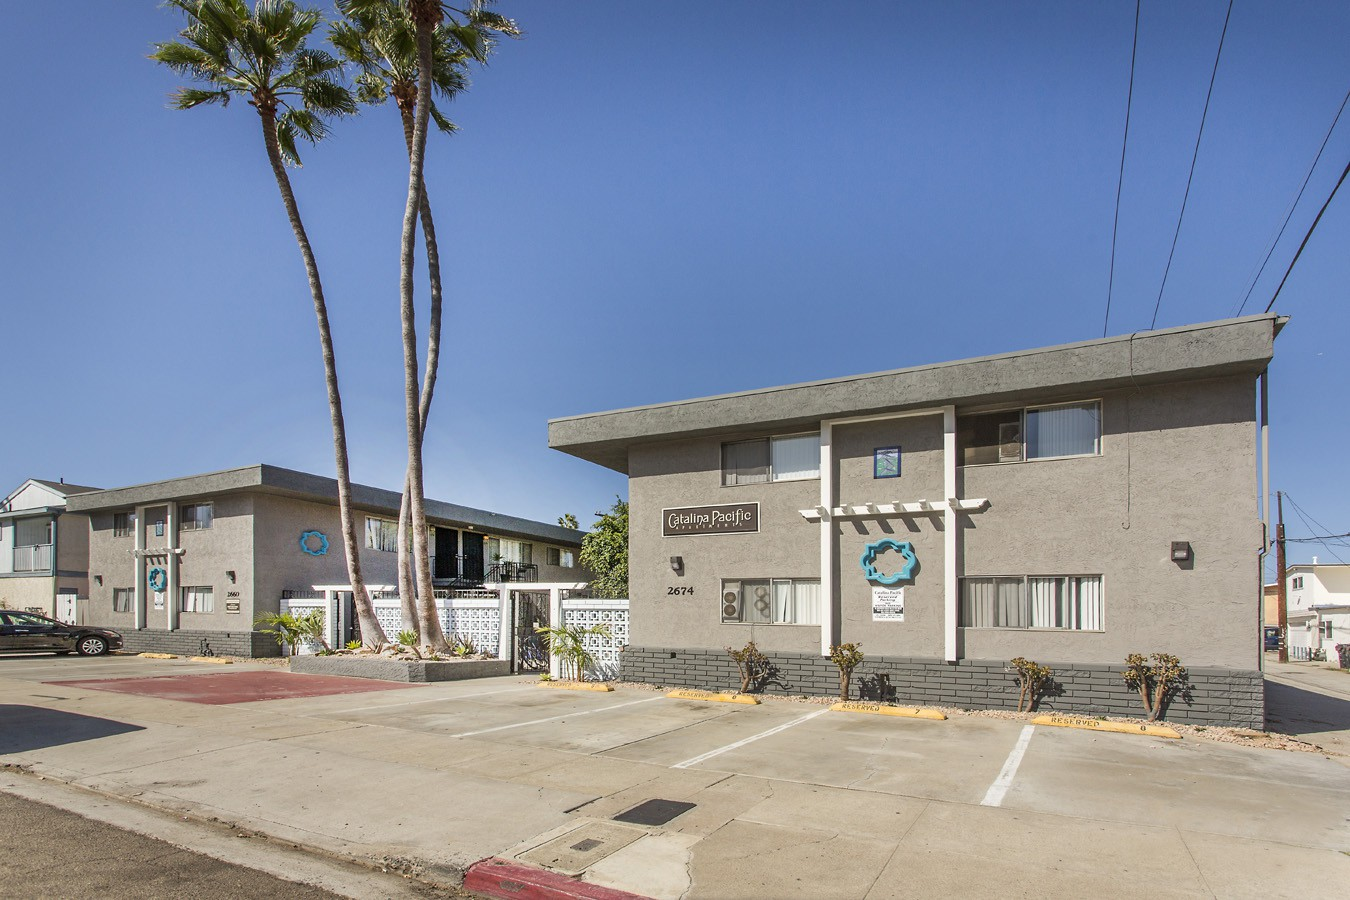 Catalina Pacific for rent